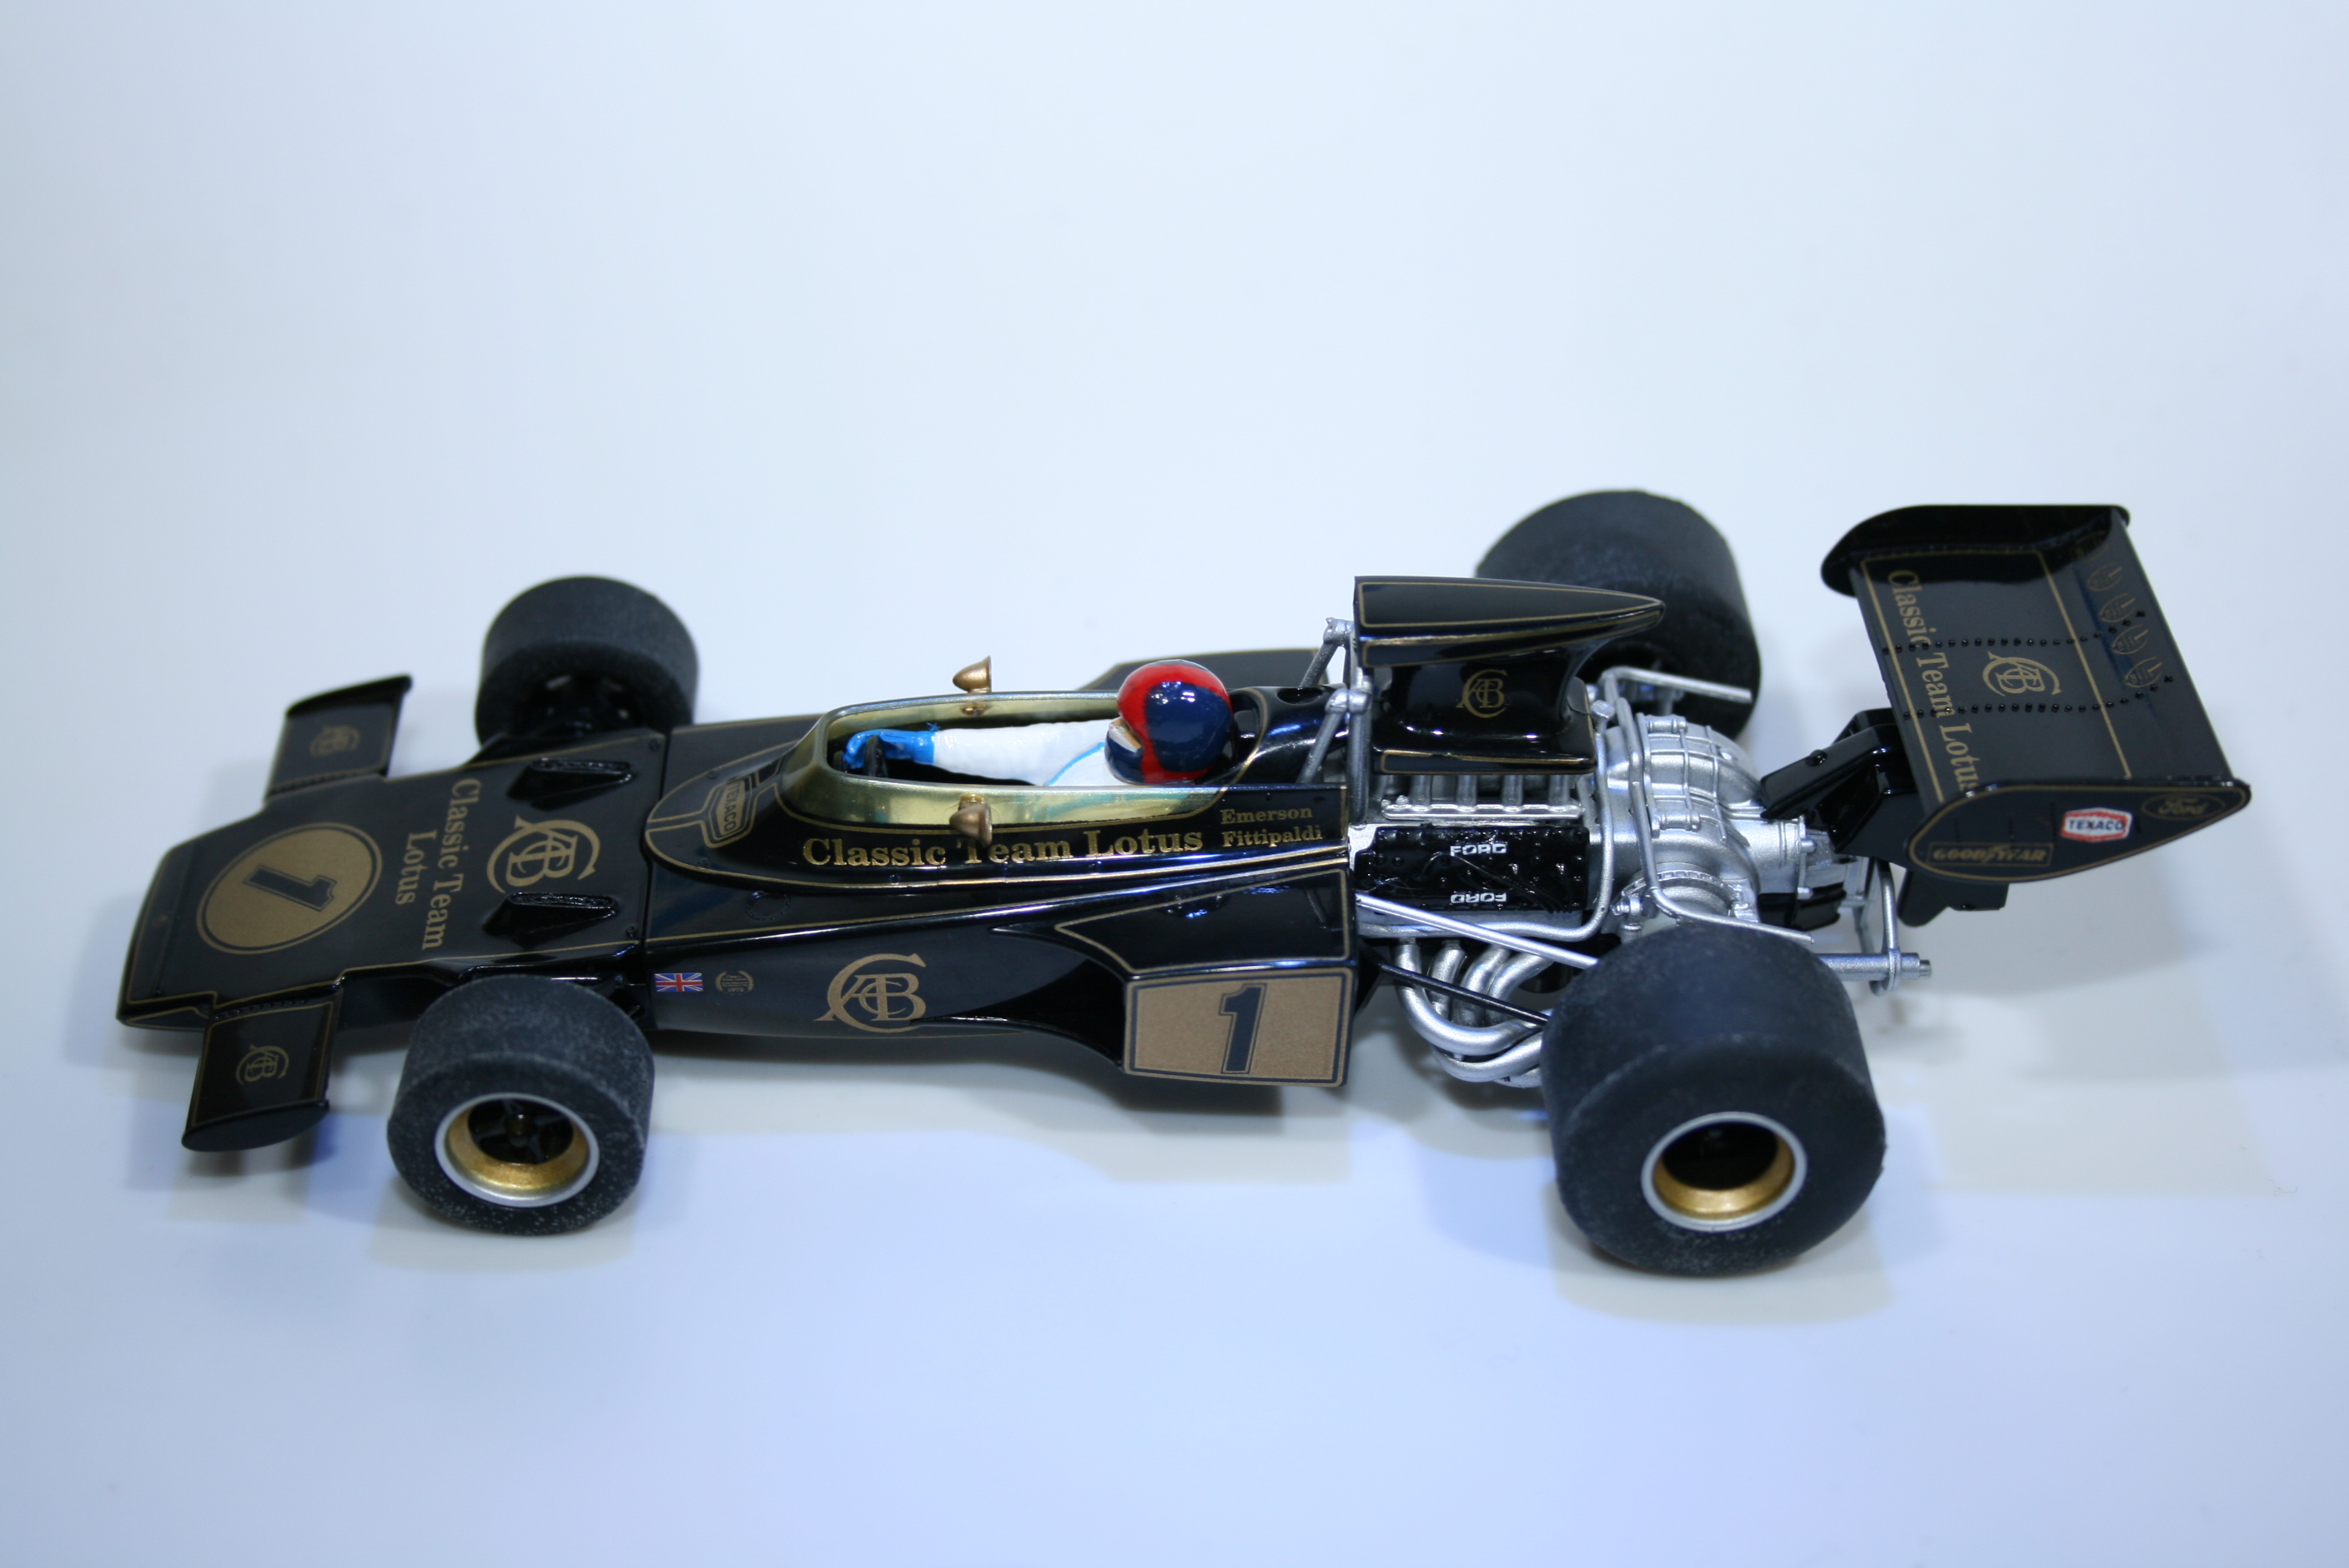 822 Lotus 72E 1973 E Fittipaldi Scalextric C3479A 2014 Boxed